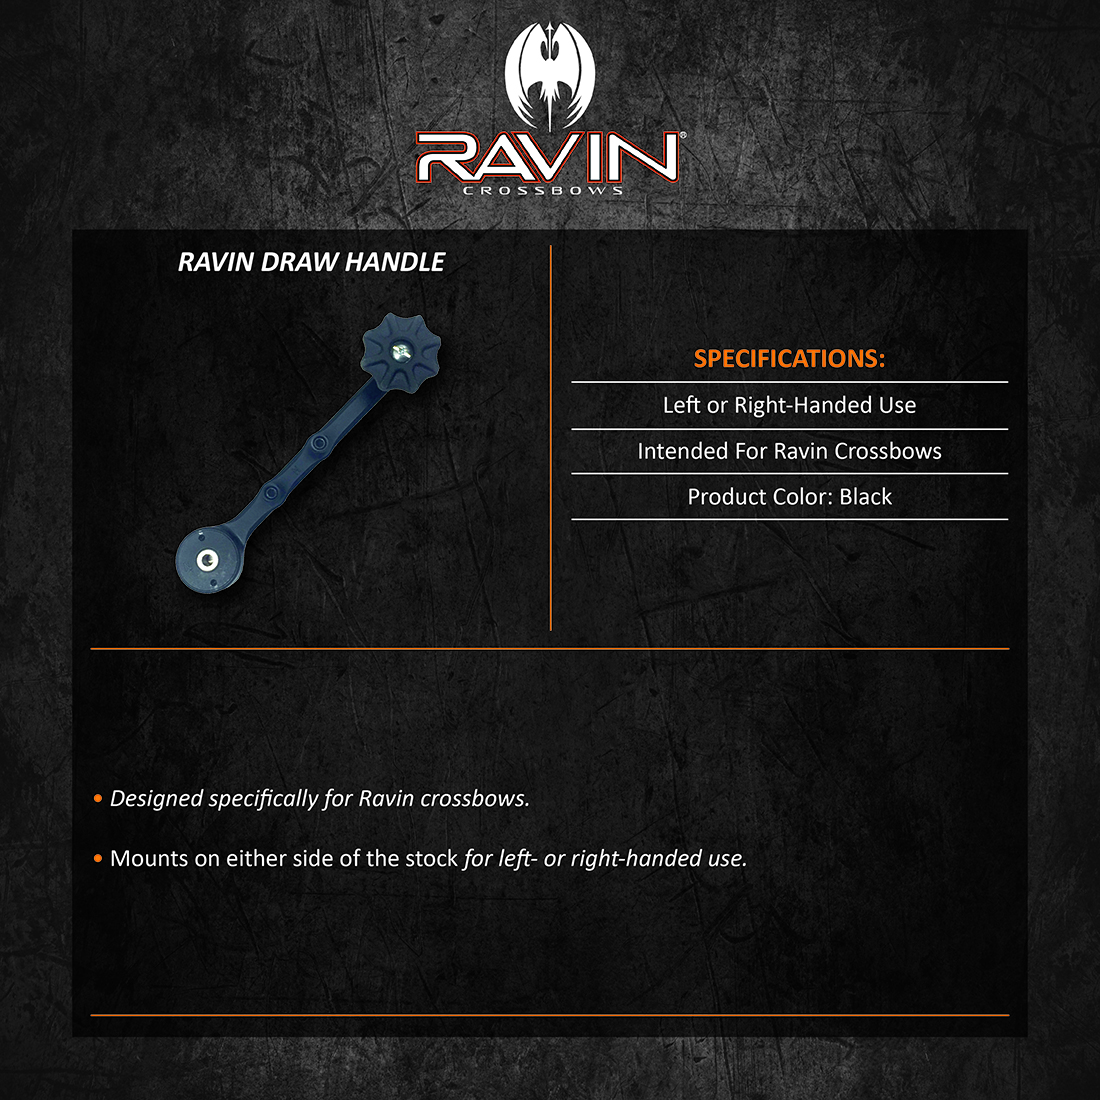 Ravin_Draw_Handle_Product_Description